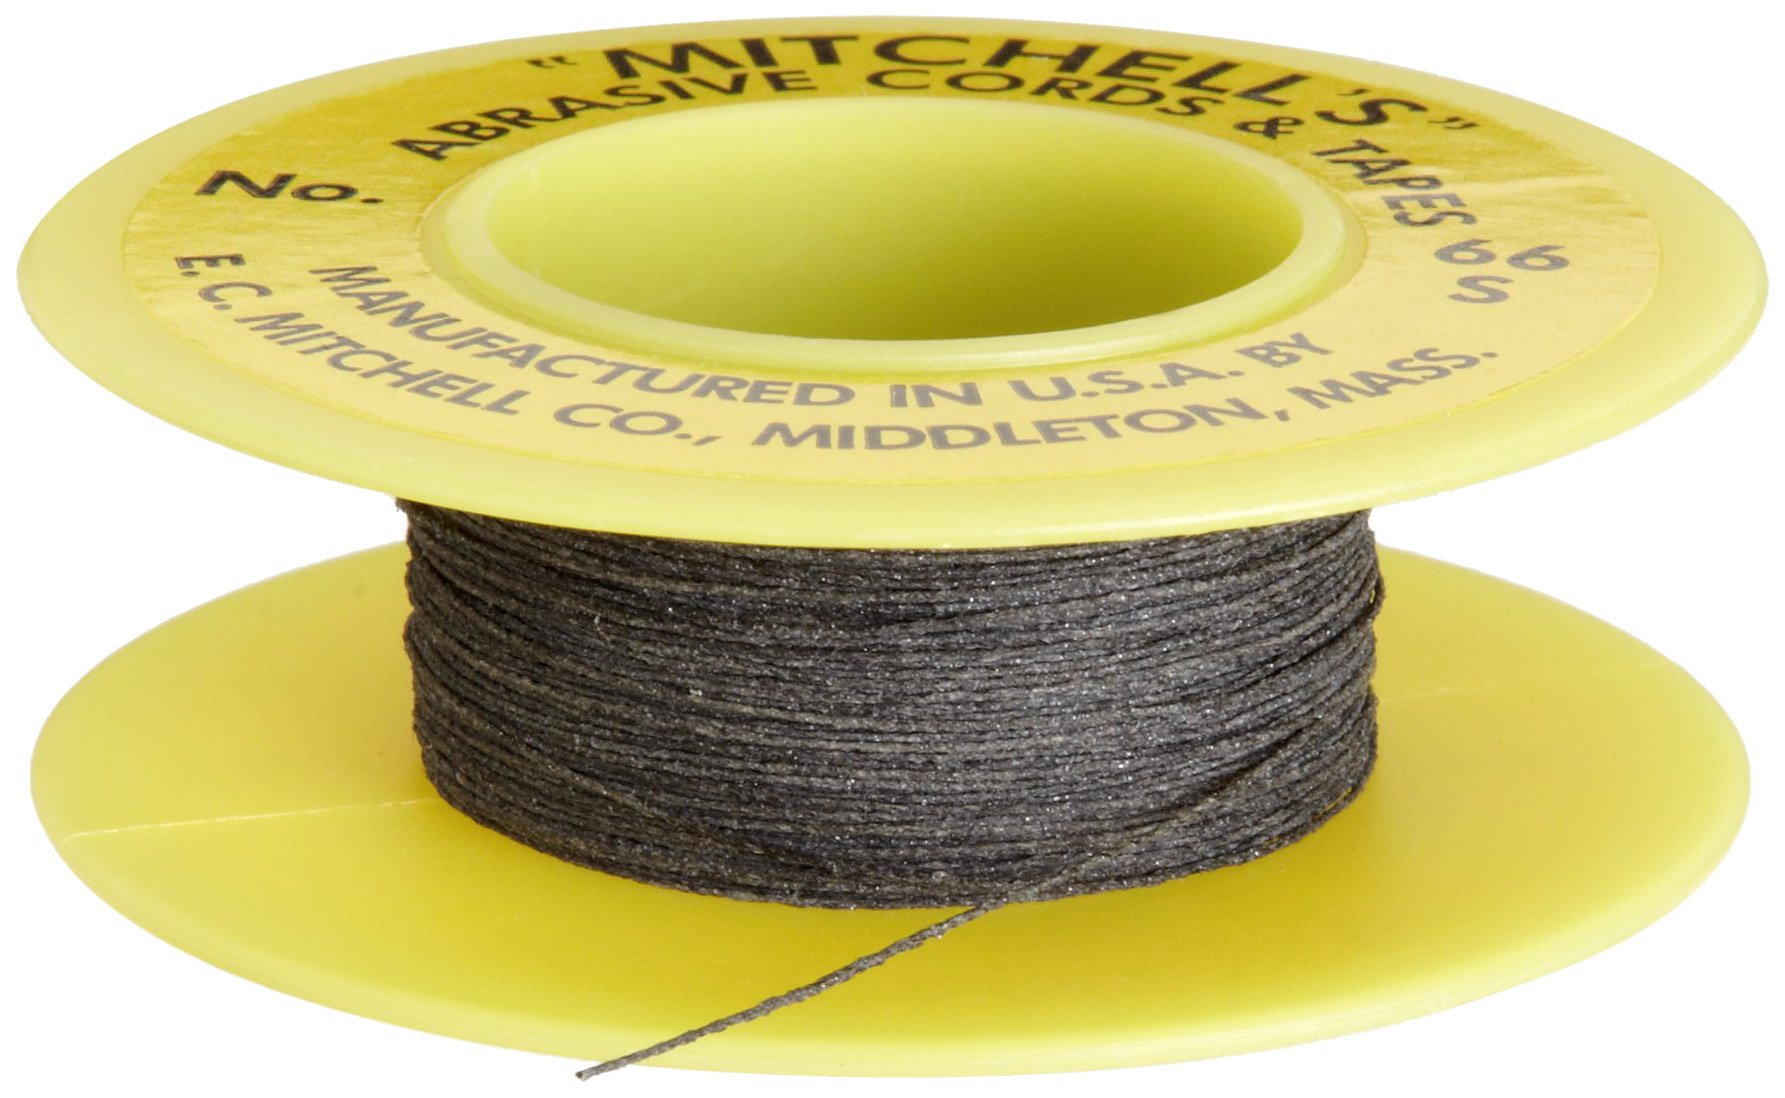 Mitchell Abrasives 66-S Round Abrasive Cord, Silicon Carbide 280 Grit .012'' Diameter x 50 Feet